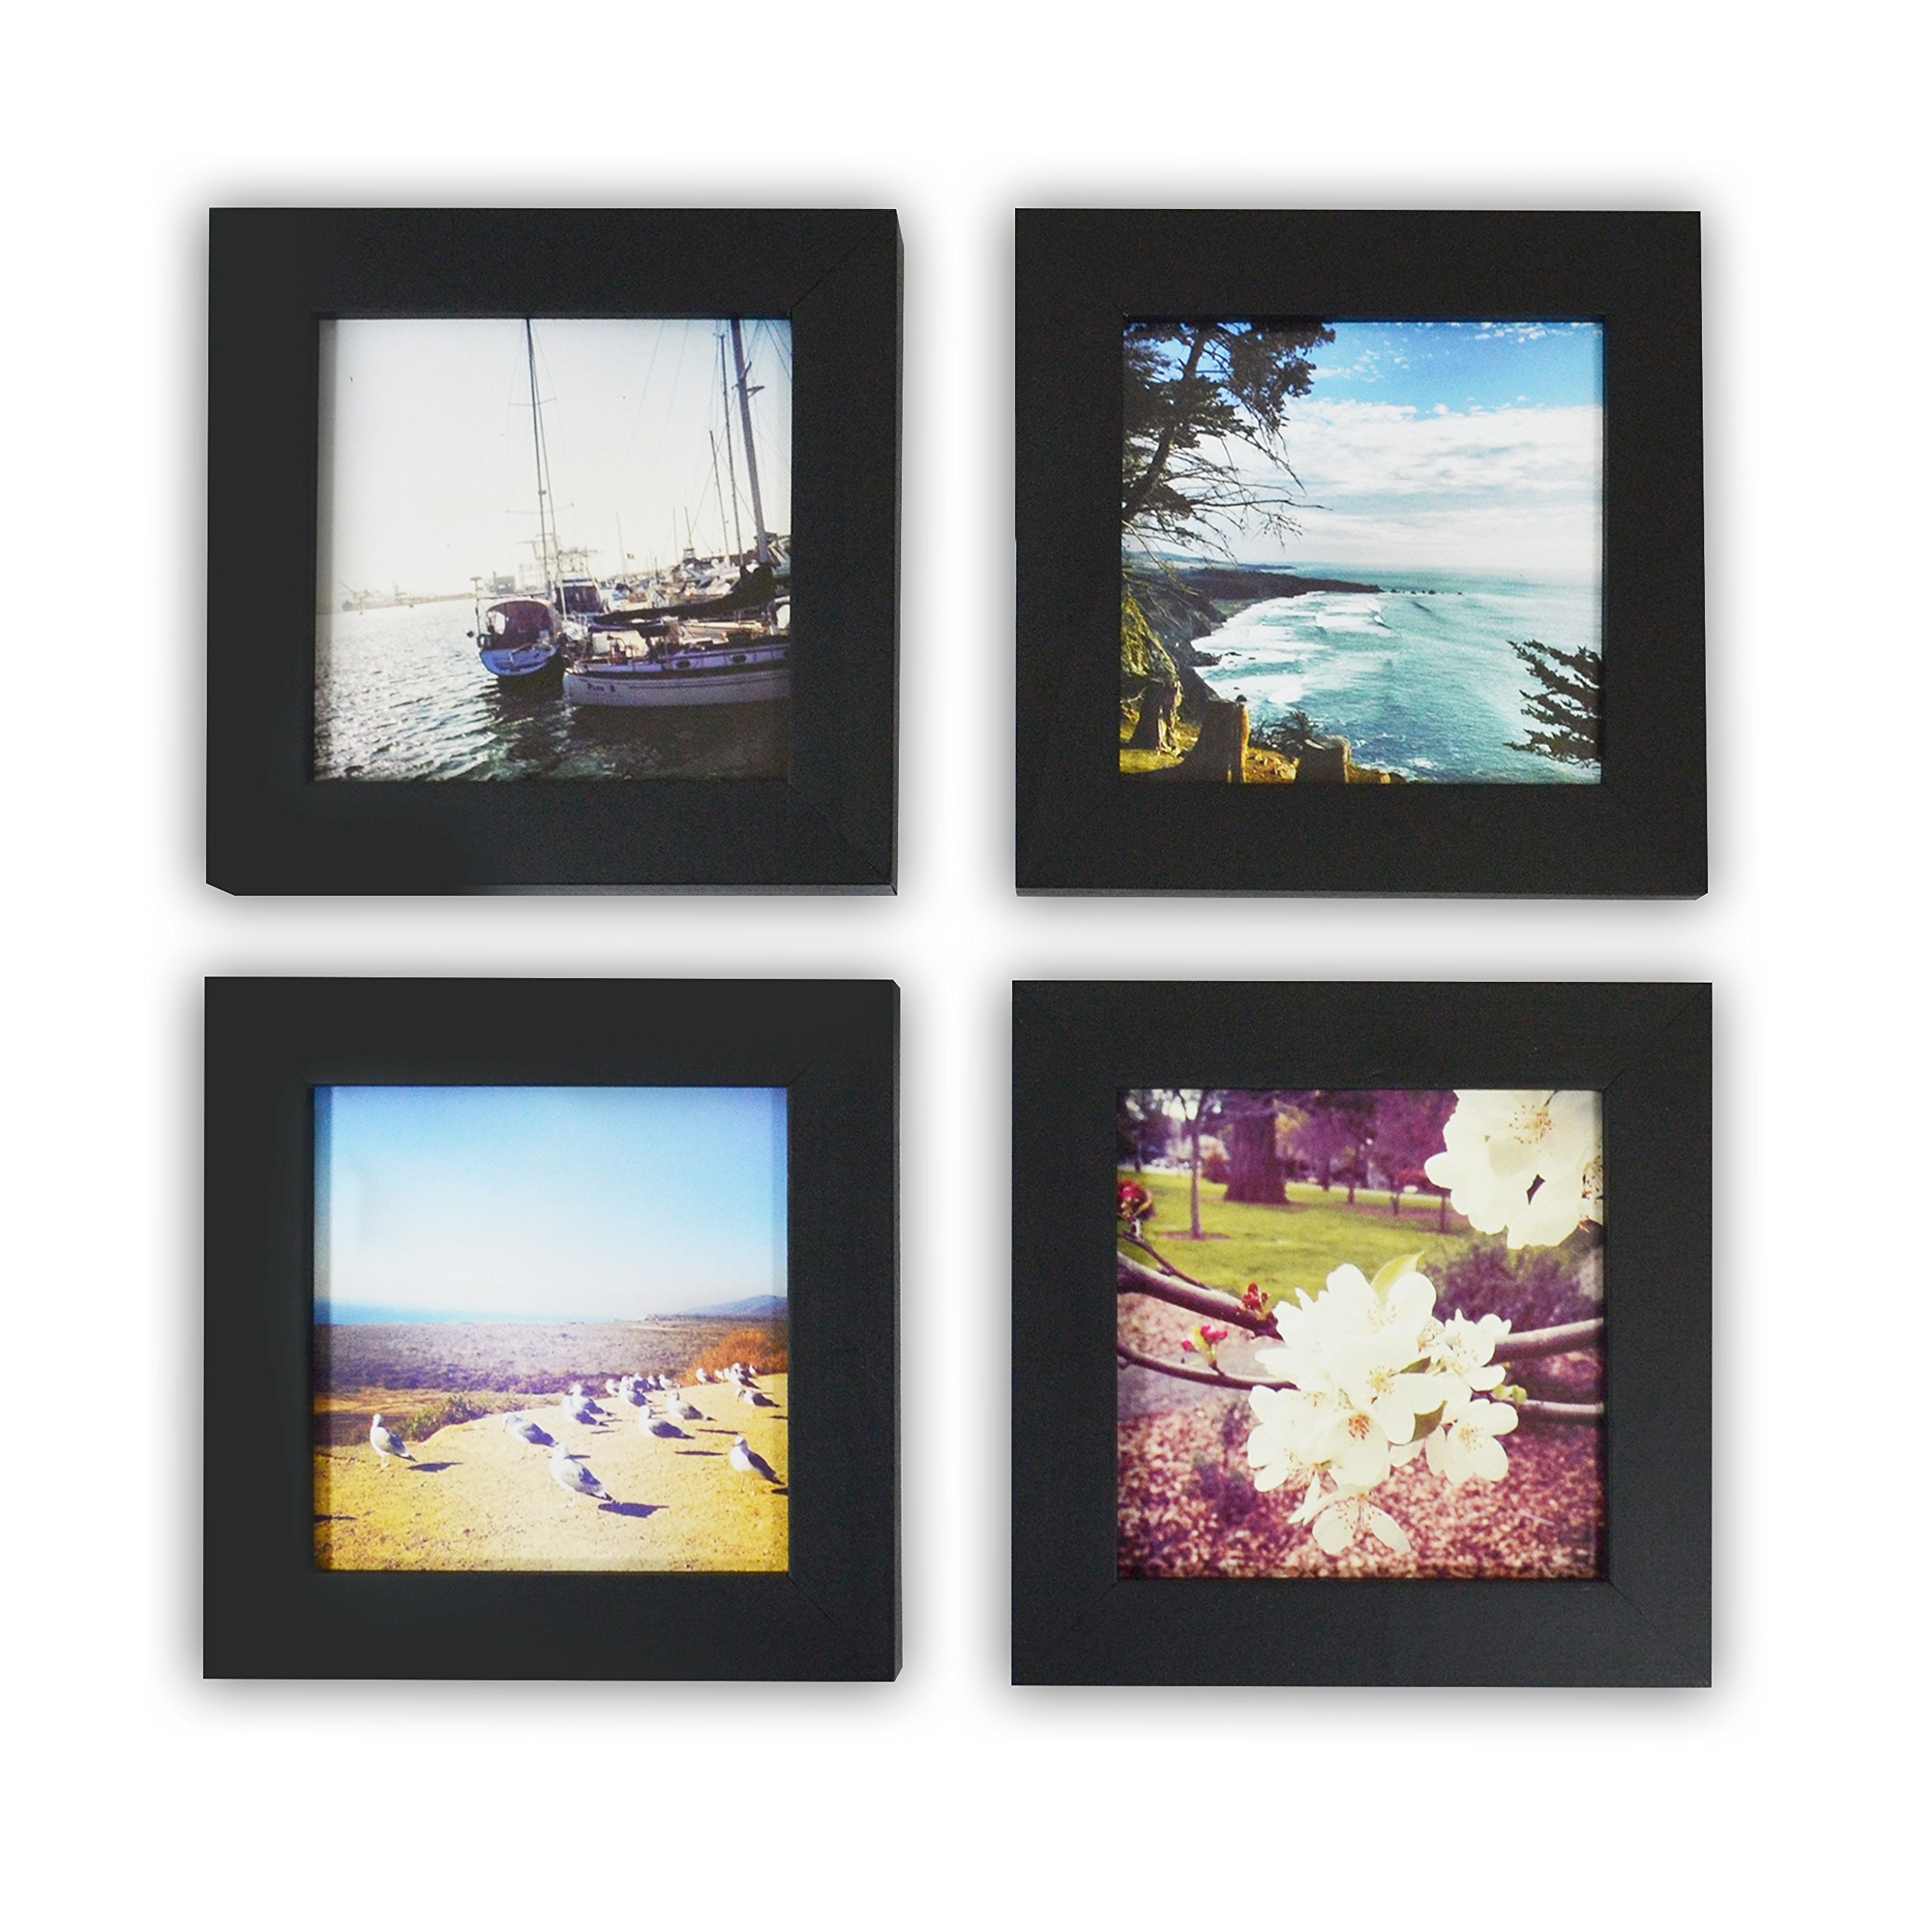 Golden State Art, Set of 4, 4x4-inch Square Photo Wood Frame, Black by Golden State Art